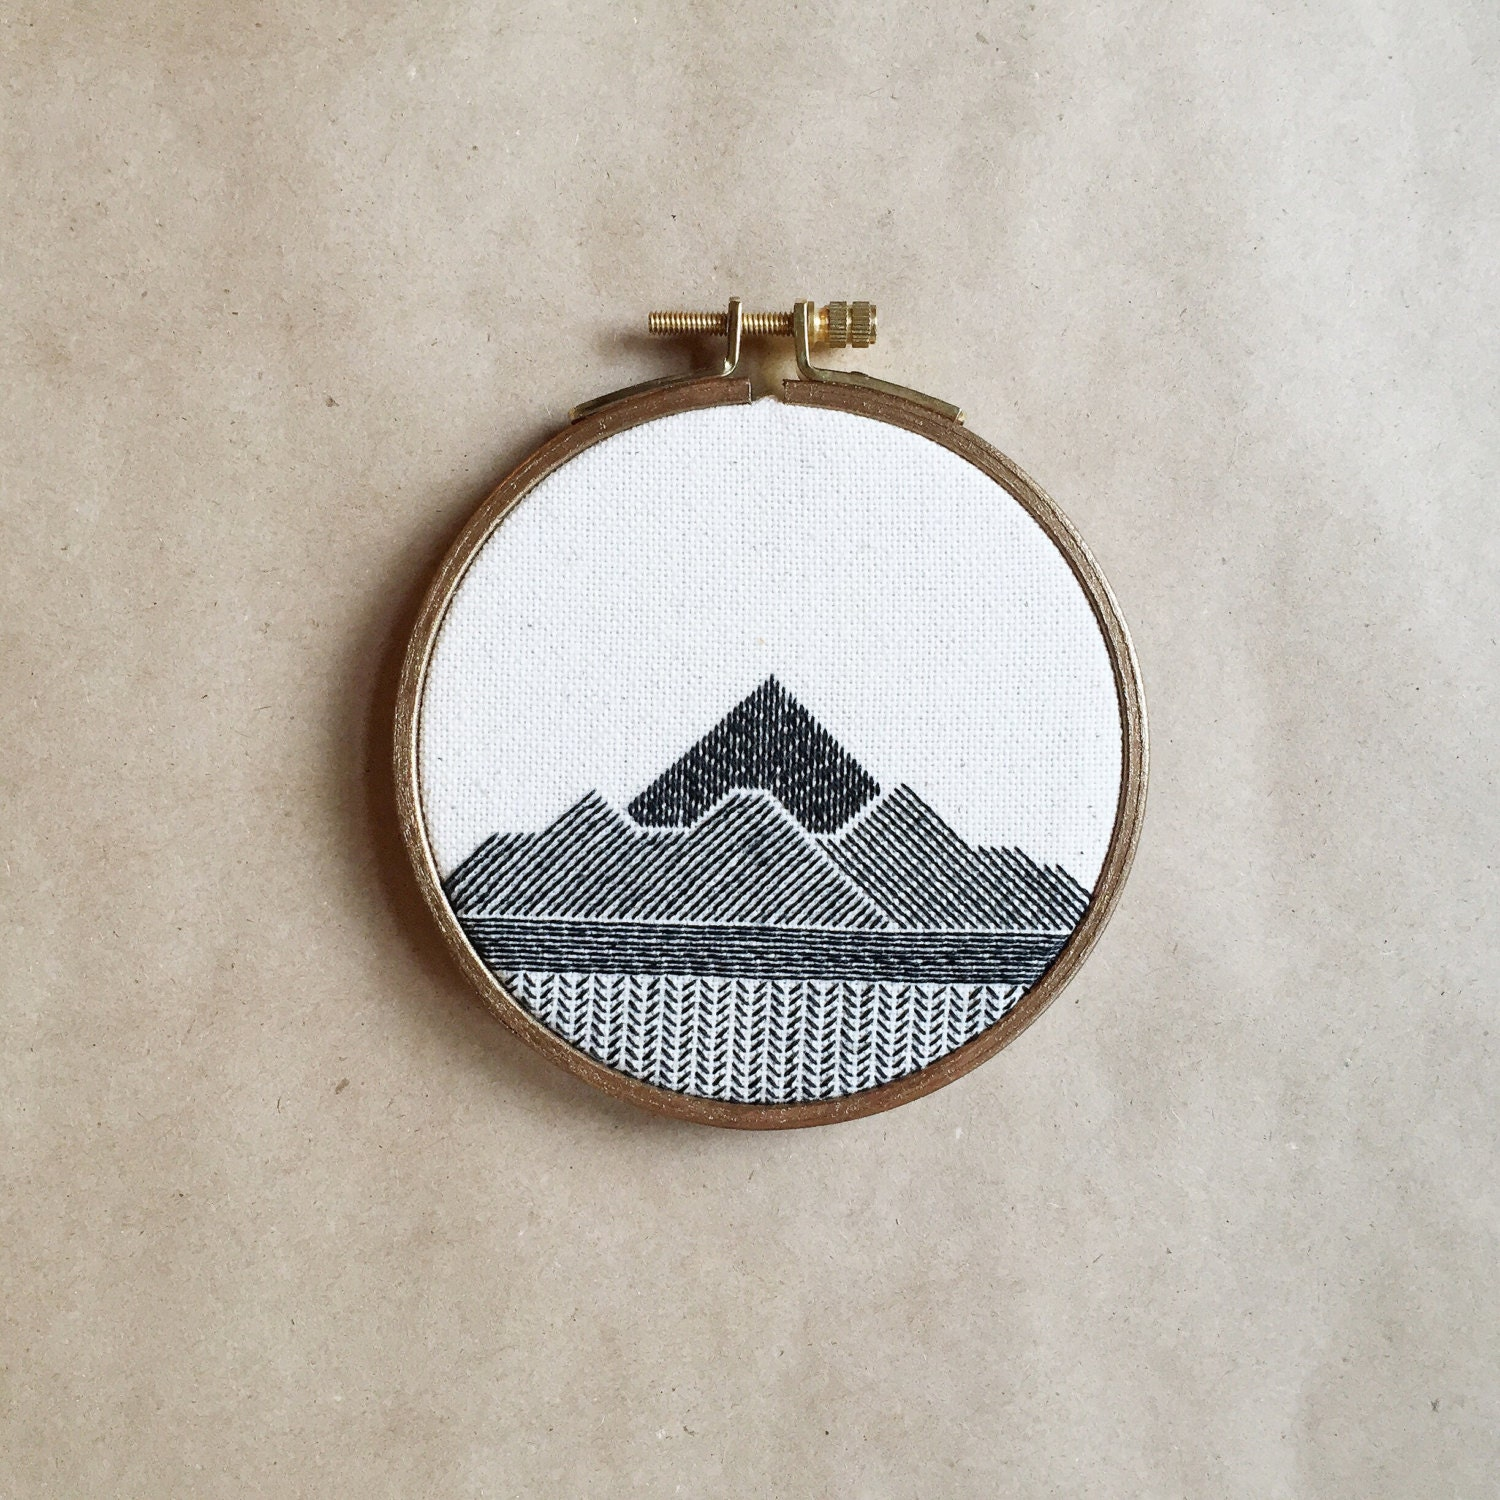 Hand stitched wall hanging hoop art embroidery by